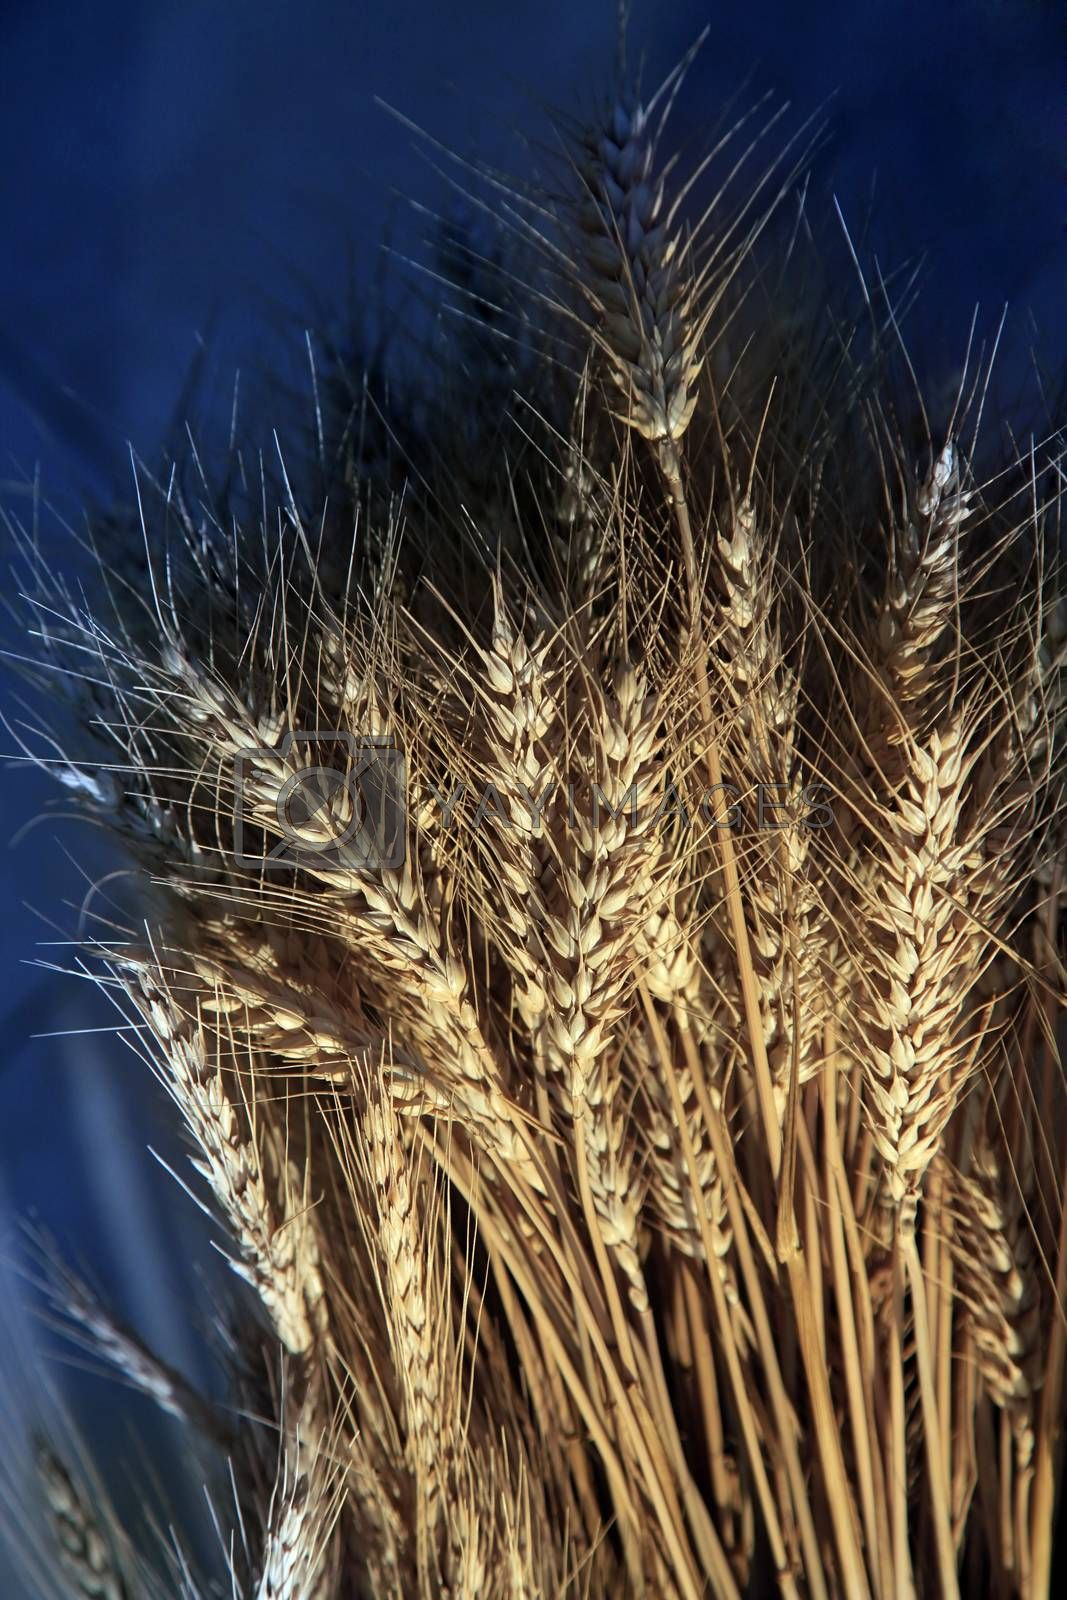 Wheat spike on a blue background